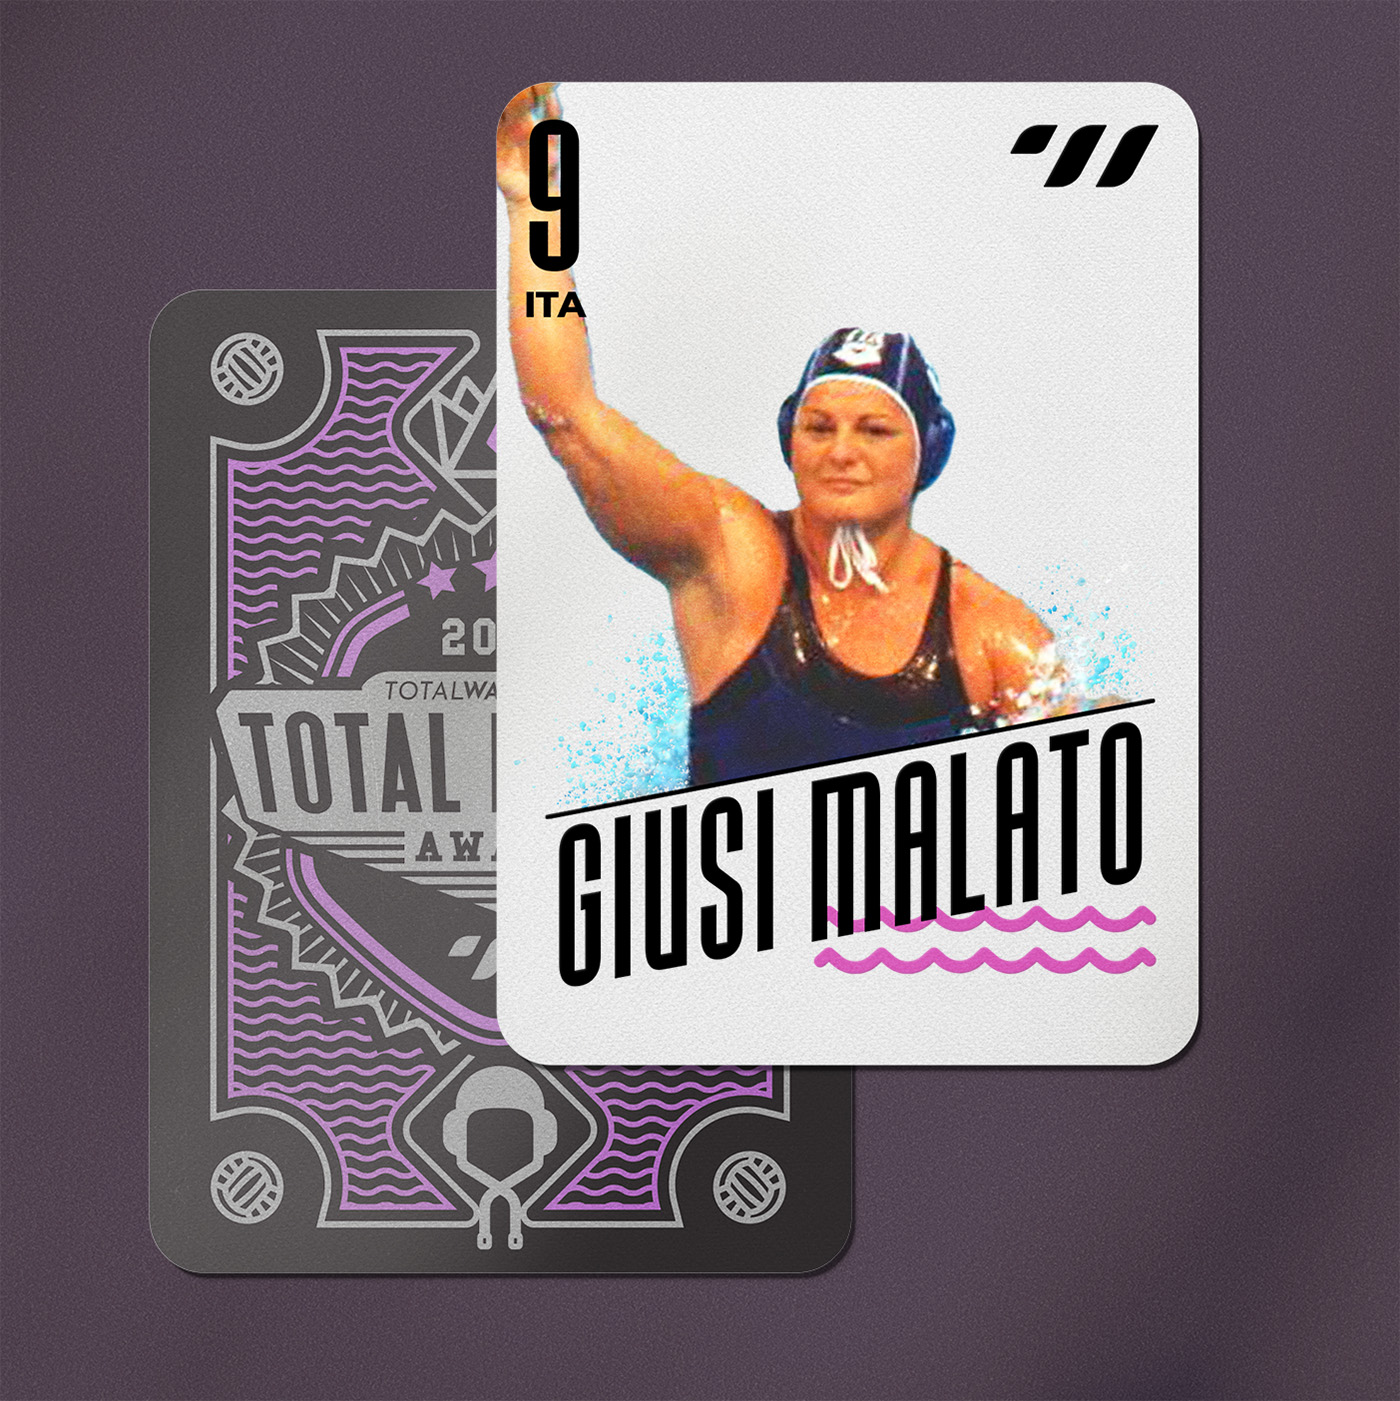 CENTER FORWARD - Giusi Malato (ITA)